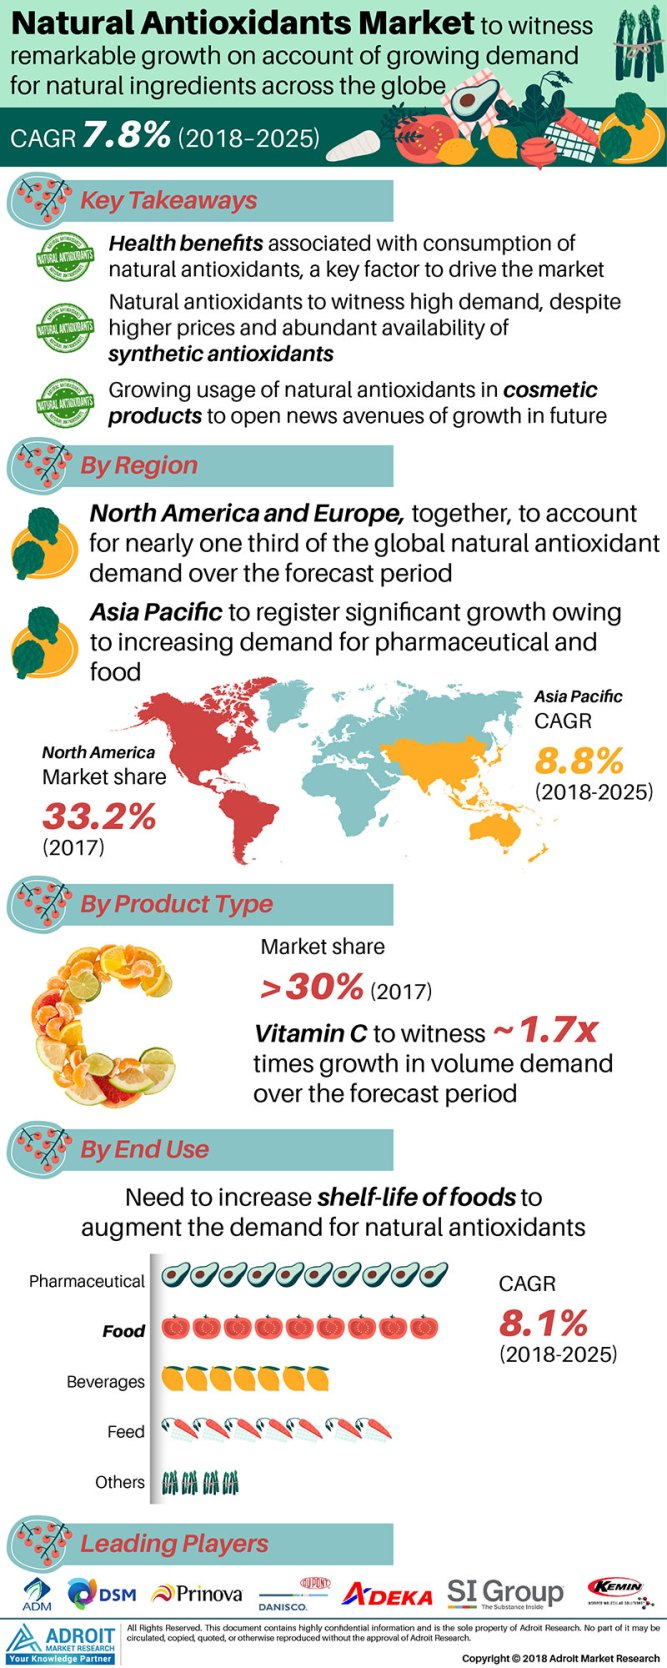 Natural Antioxidants Market Outline Growth Drivers Analysis to Surpass US$ 2.26 Billion by 2025- Competitive Landscape and Restraint, Prediction by Region and Outlook 1